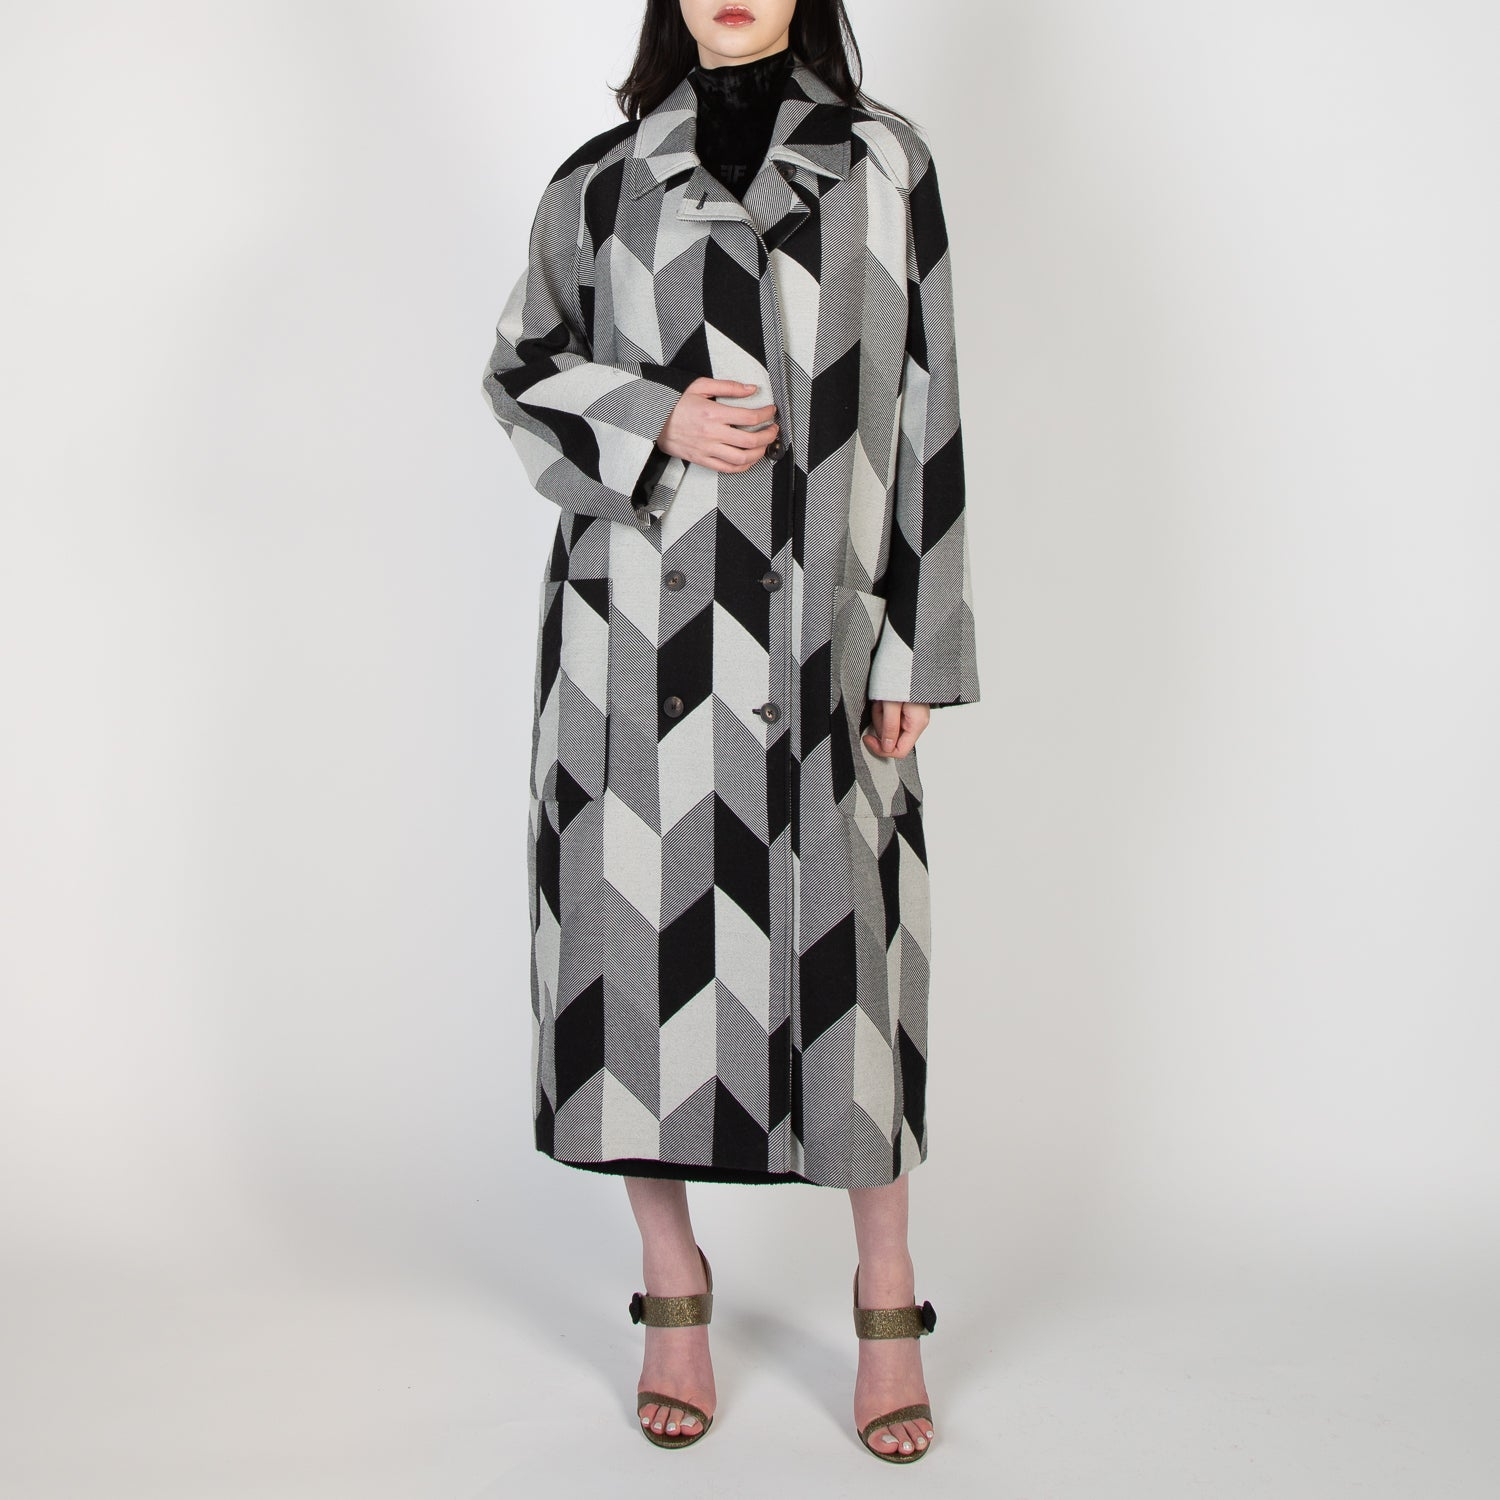 double breast black and white checkered coat by Frenken at Secret Location